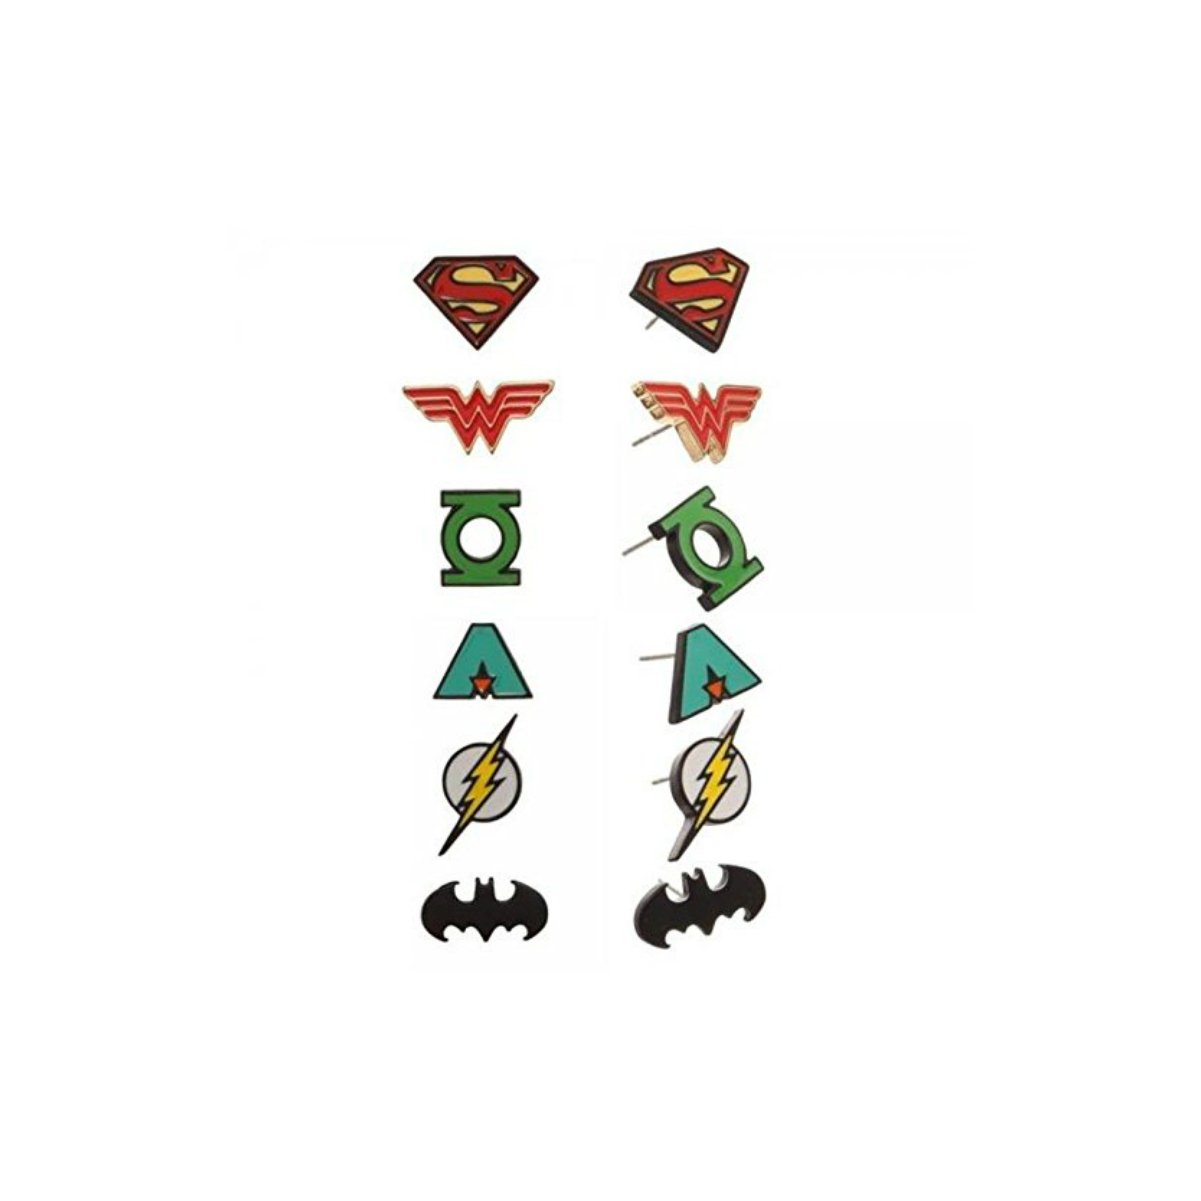 DC Comics Classic Justice League 6 Pair Stud Earring Set w/Gift Box by Superheroes Brand